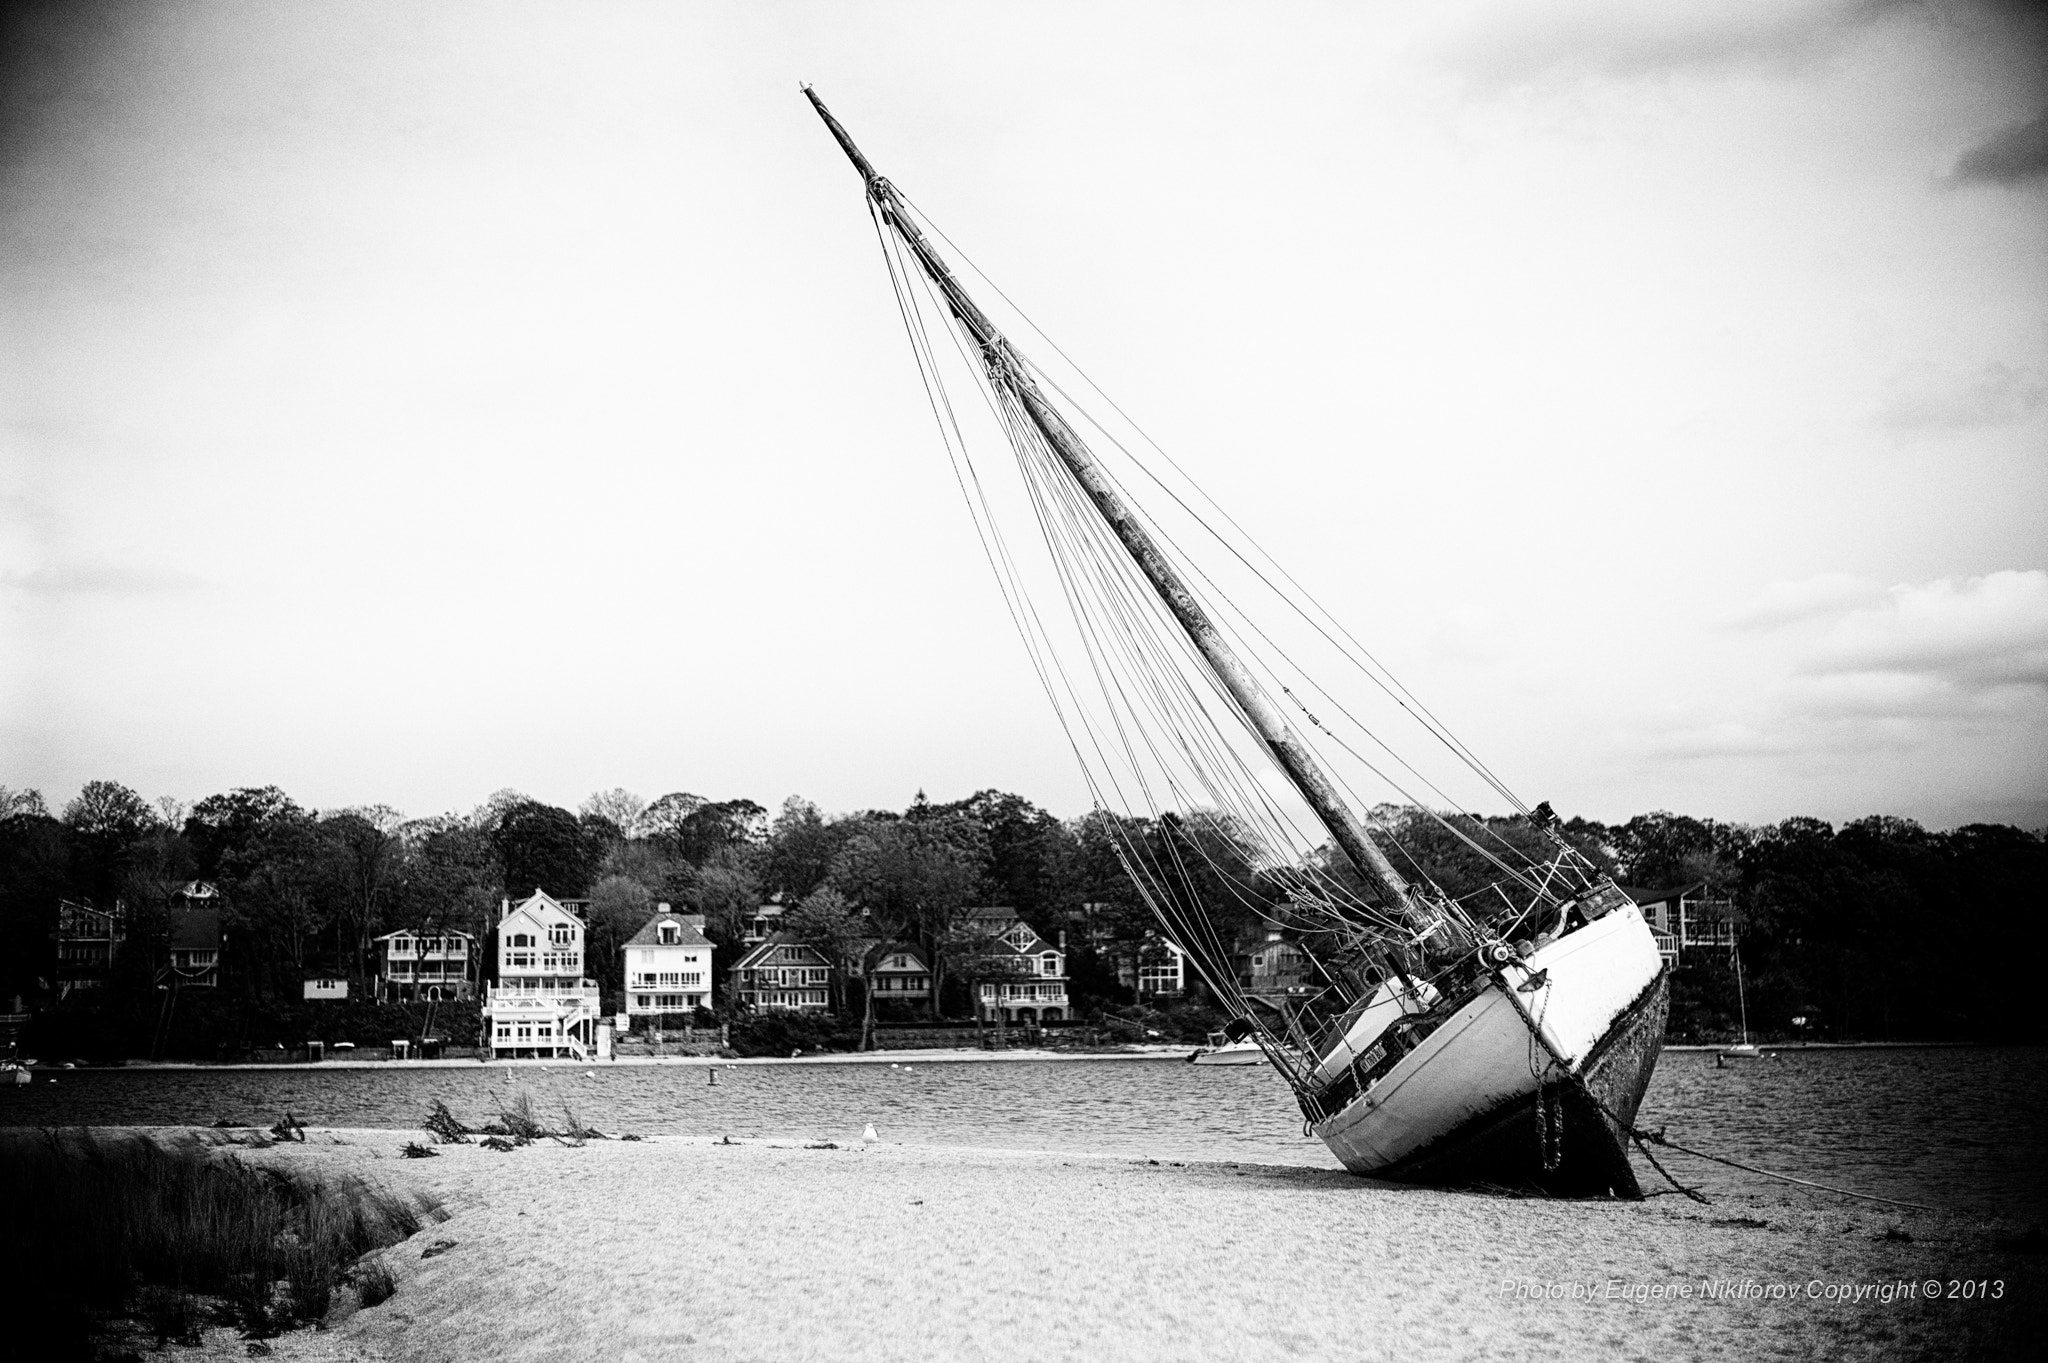 Photograph Boat on the shore after Hurricane Sandy (Long Island) by Eugene Nikiforov on 500px